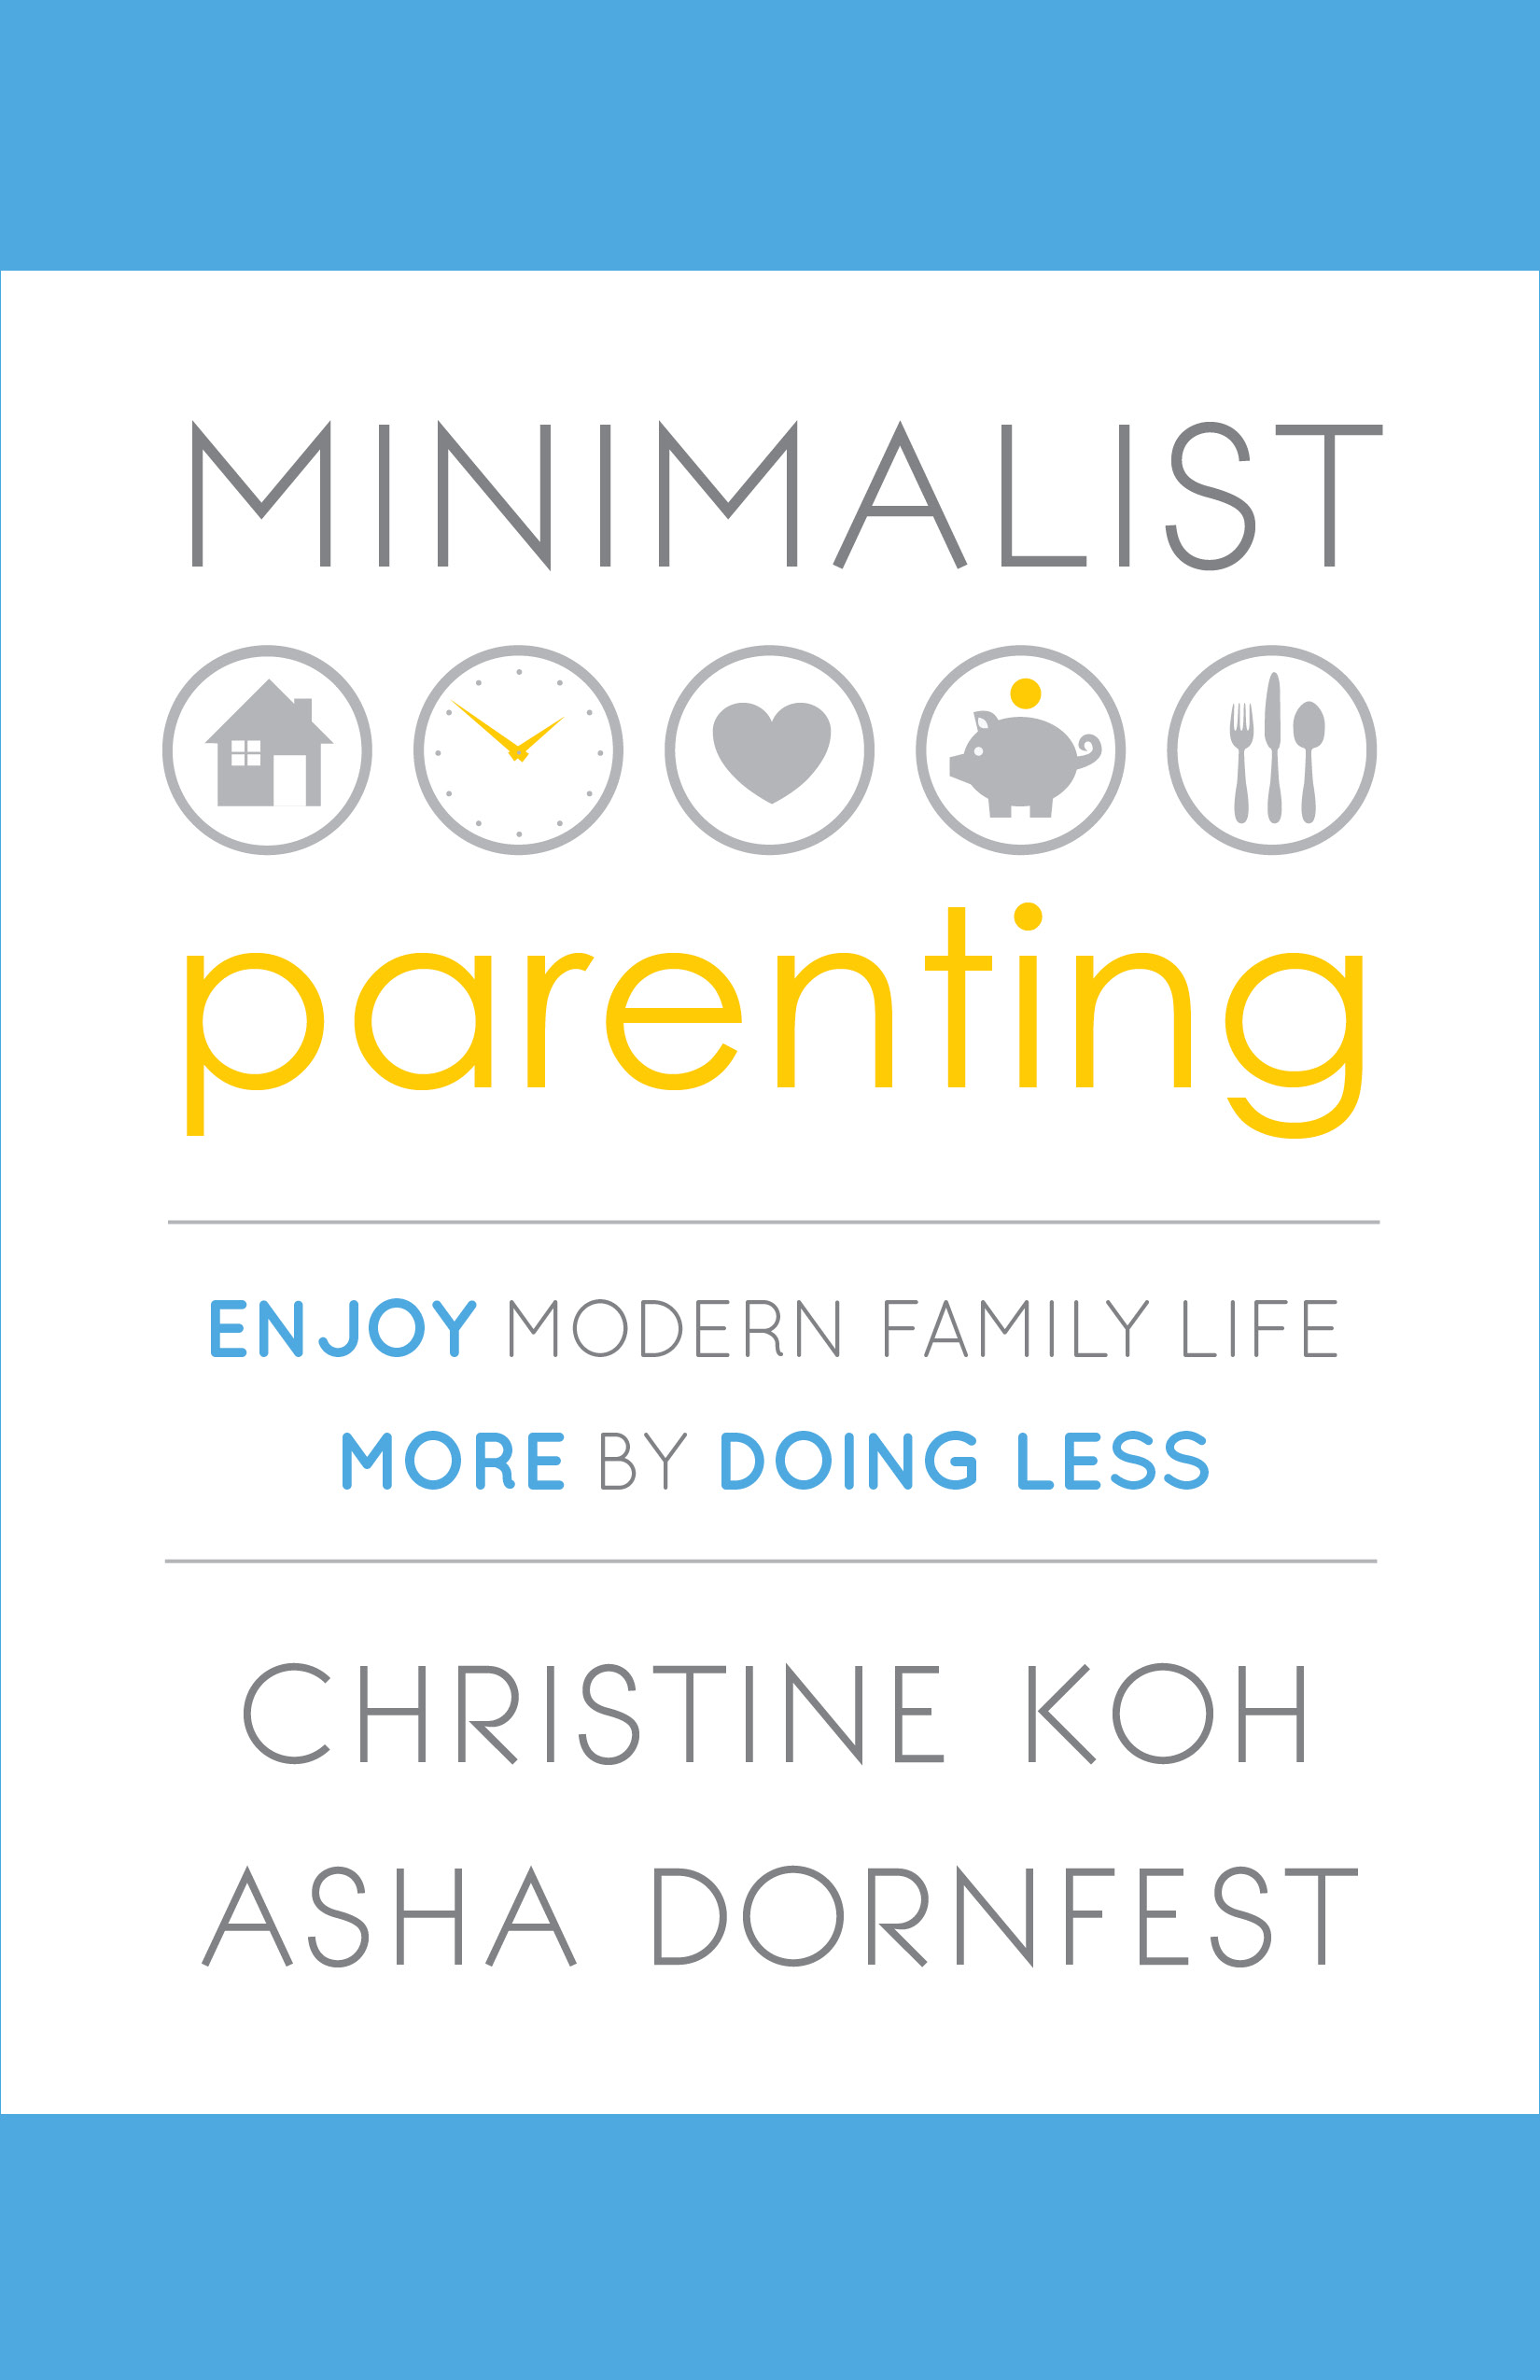 6 Steps to Minimalist Parenting